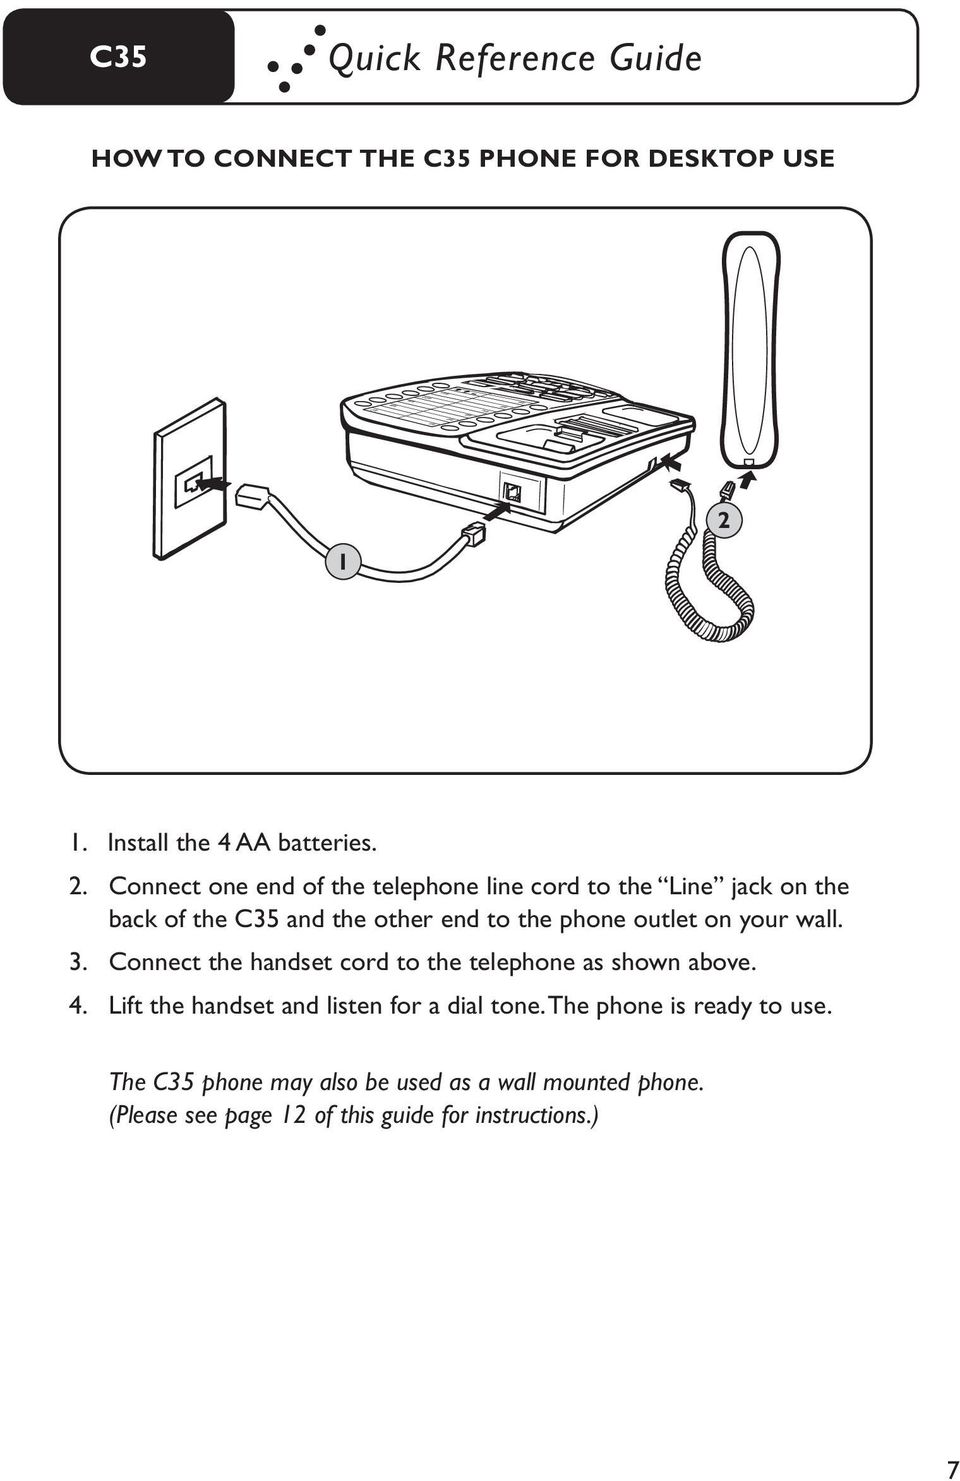 User Guide C35 Amplifi Ed Telephone I S P A O F R Pdf Wiring Diagram For Wall Mount Connect One End Of The Line Cord To Jack On Back